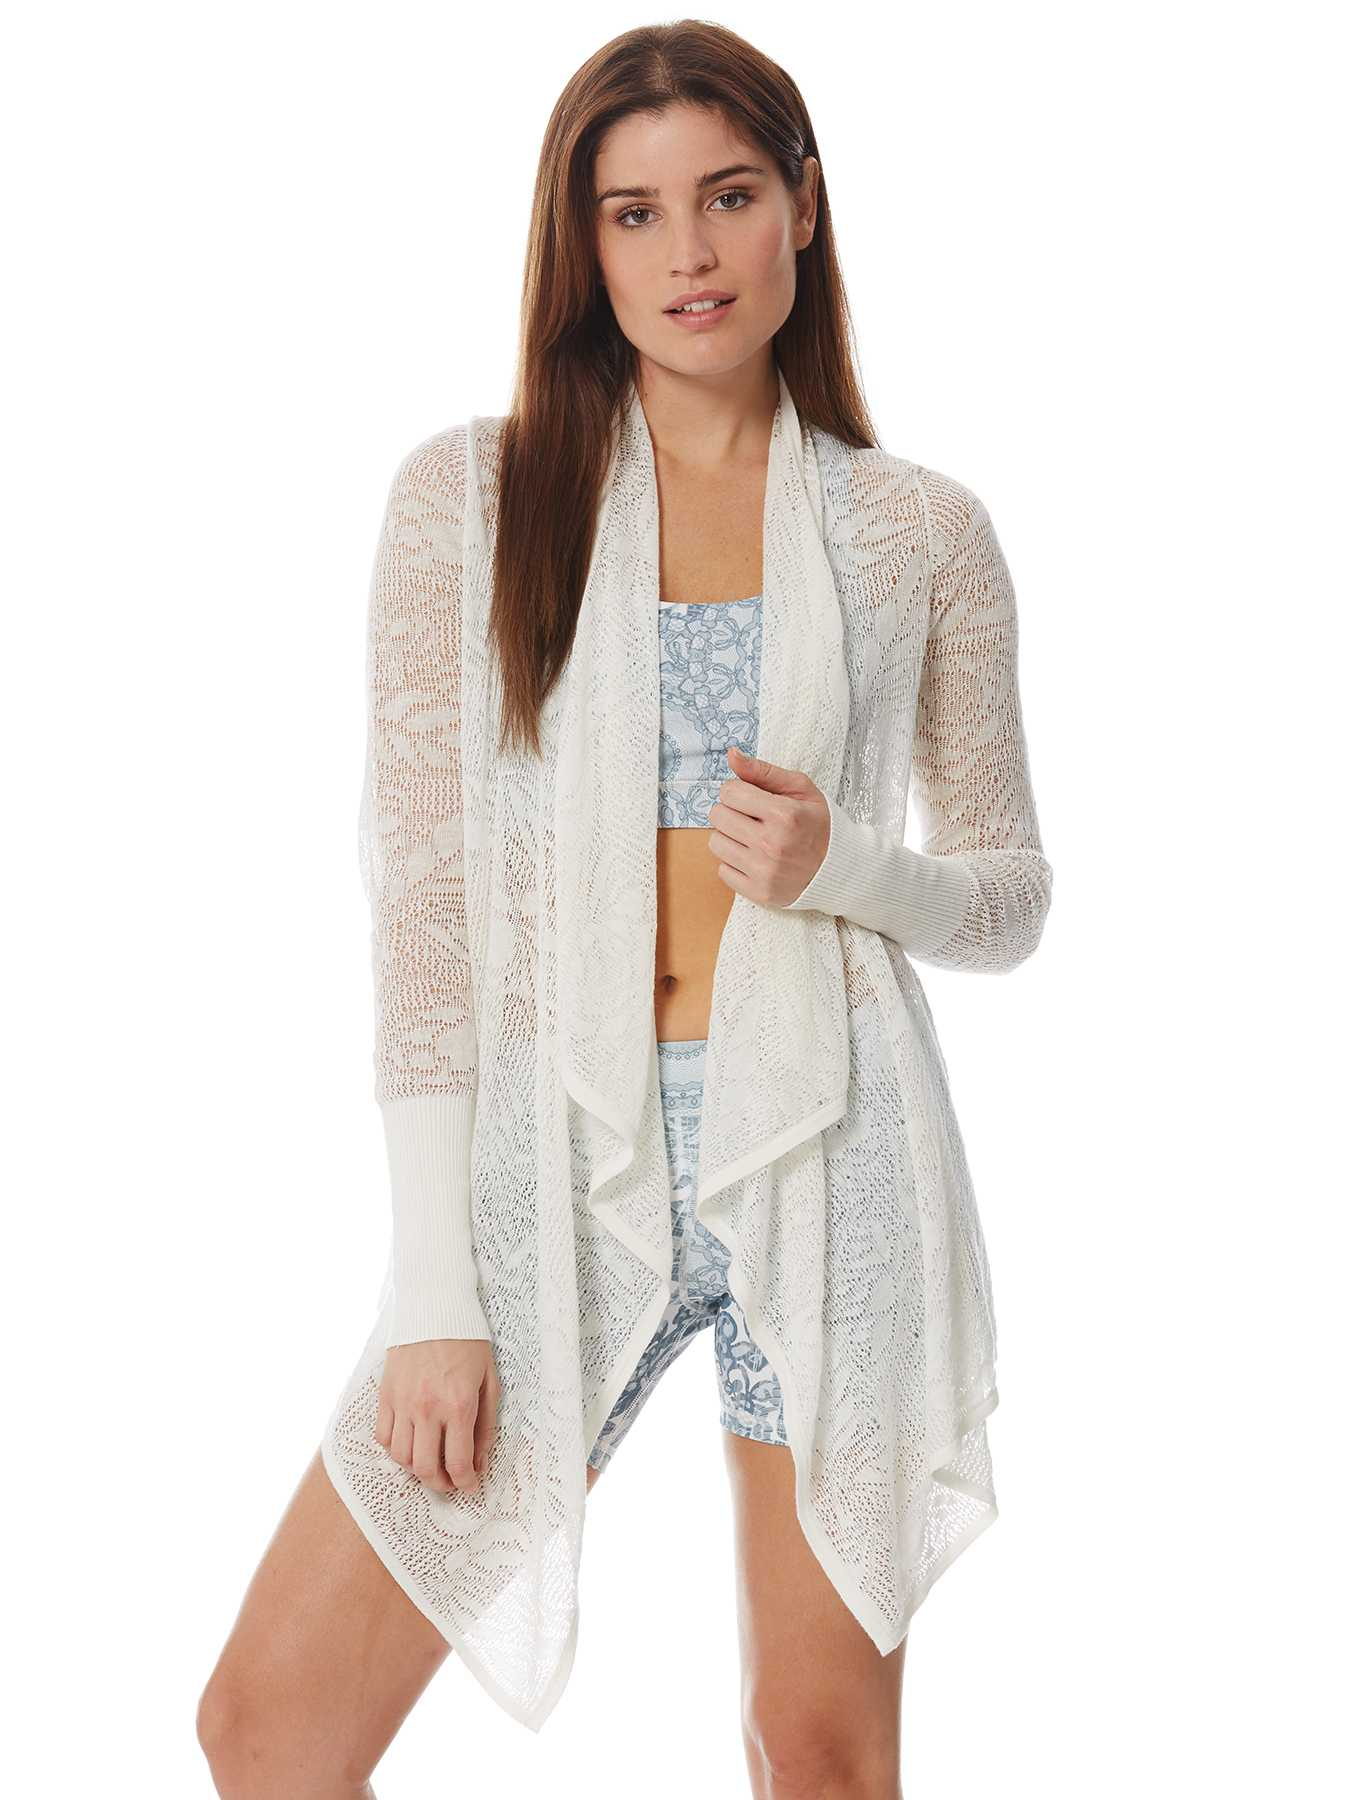 Peony Open Floral Jacquard Cardigan